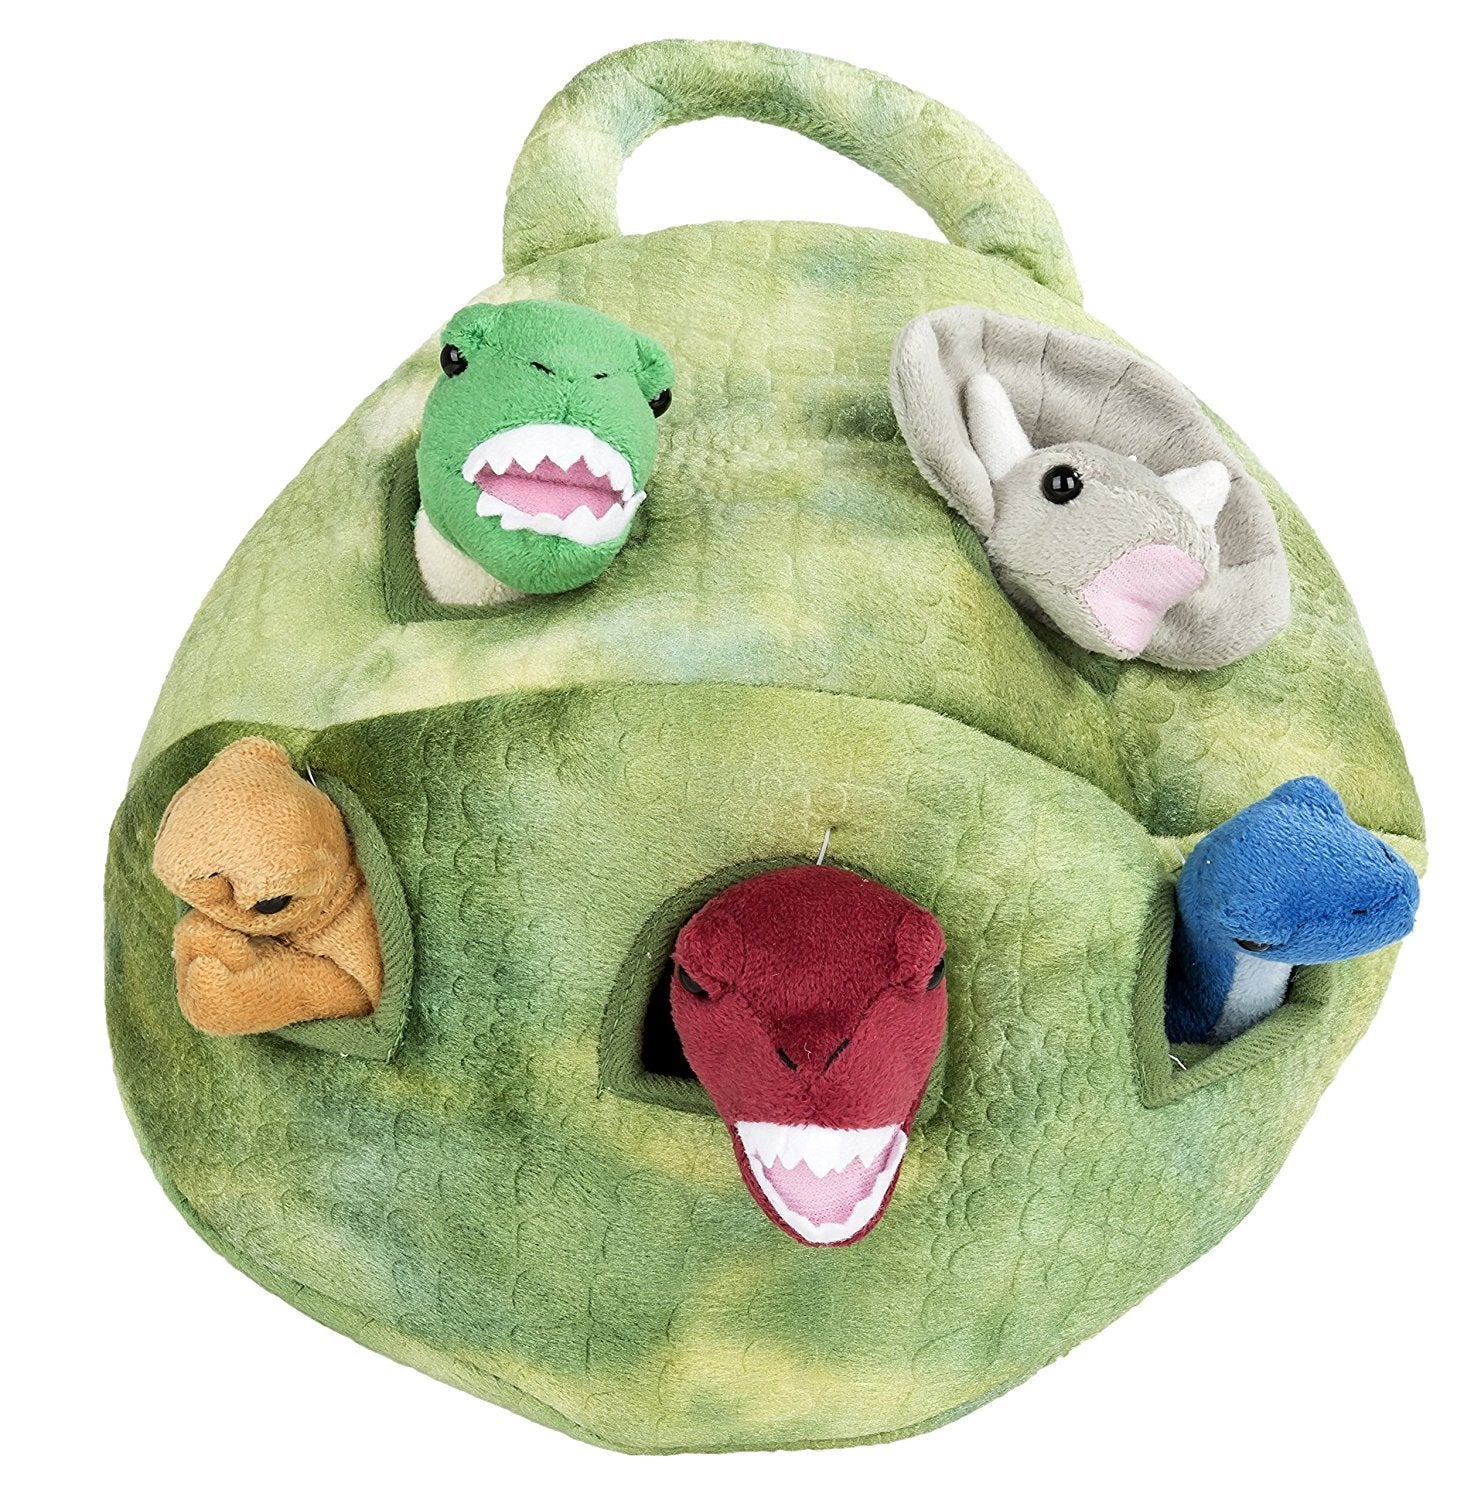 "Dinosaur House - 12"" Carrying Case w/5 Plush Dinosaurs by Unipak Designs"